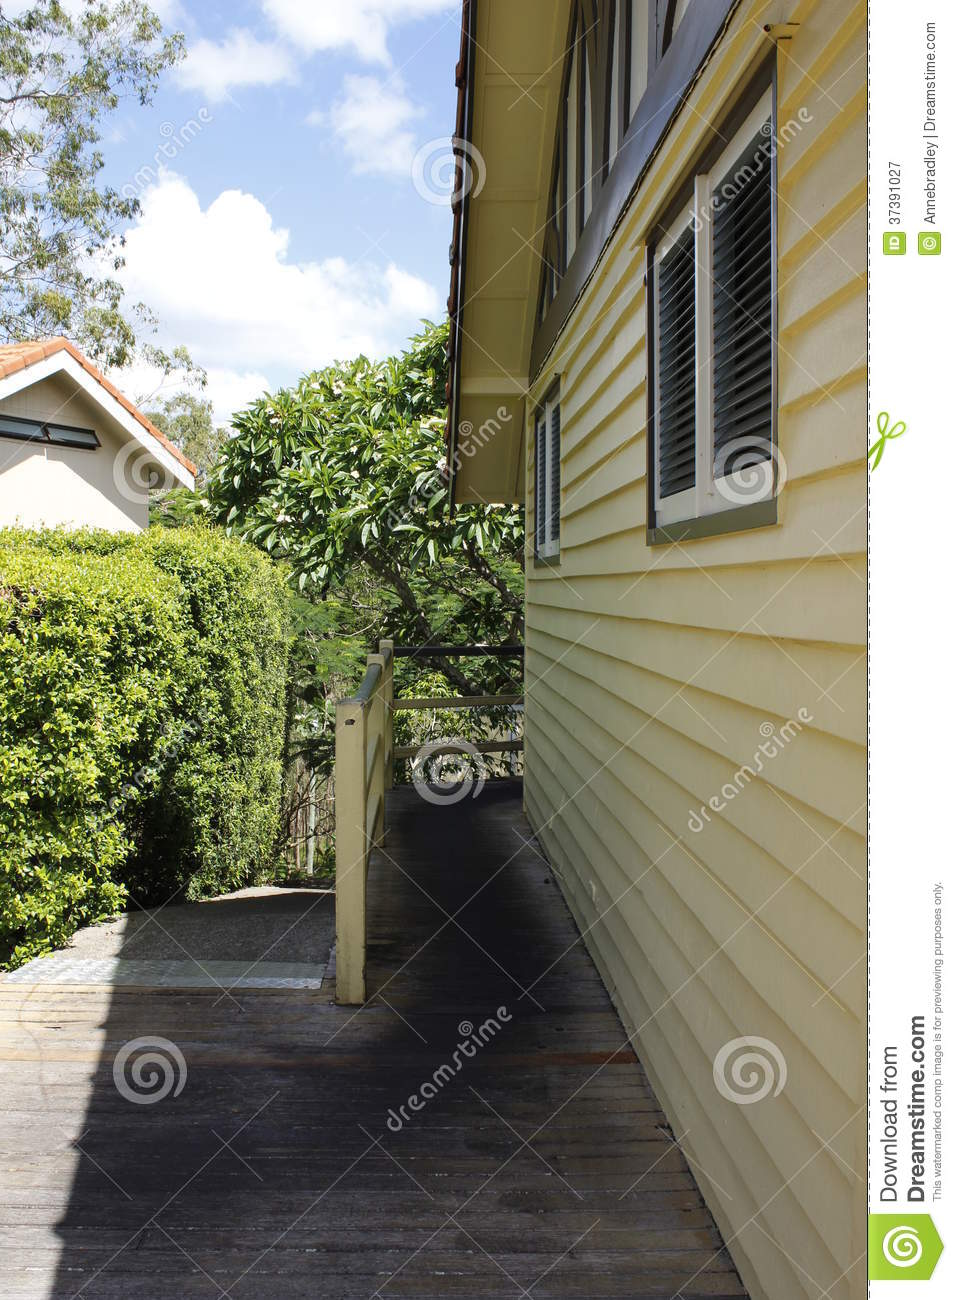 Ramp leading to wooden building